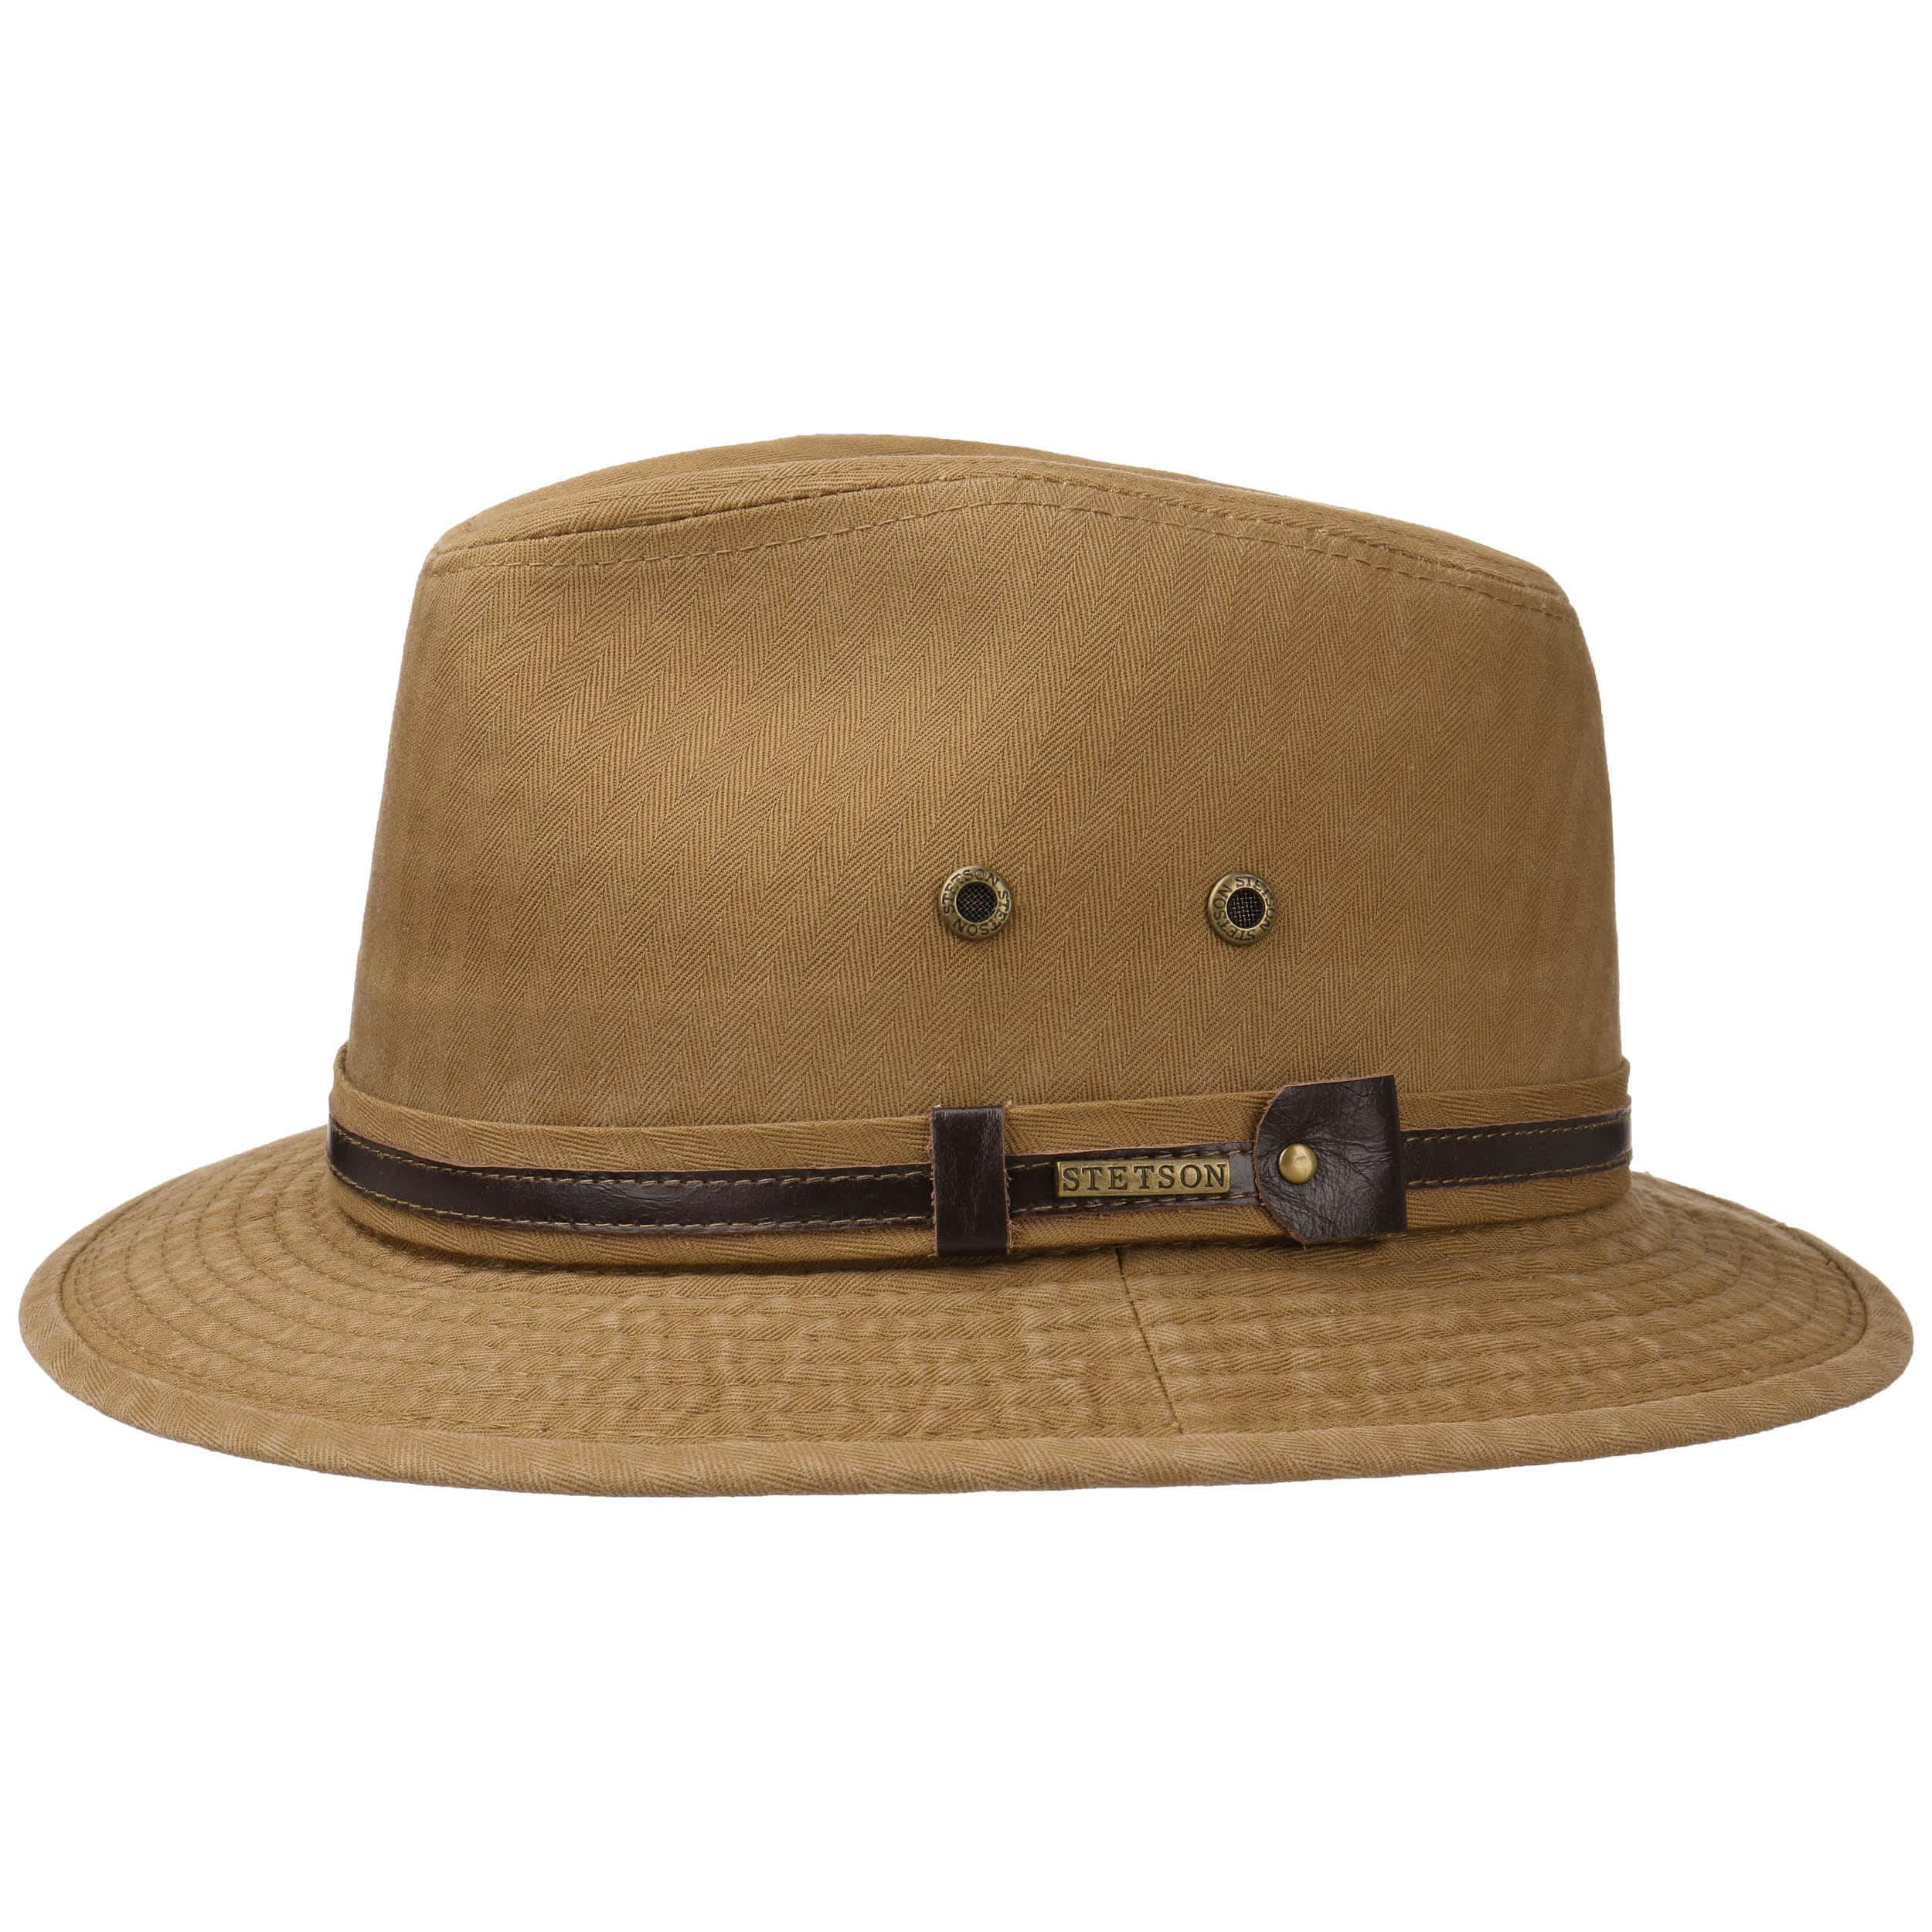 98de84566a00d ... Classic Cotton Traveller Hat by Stetson - light brown 5